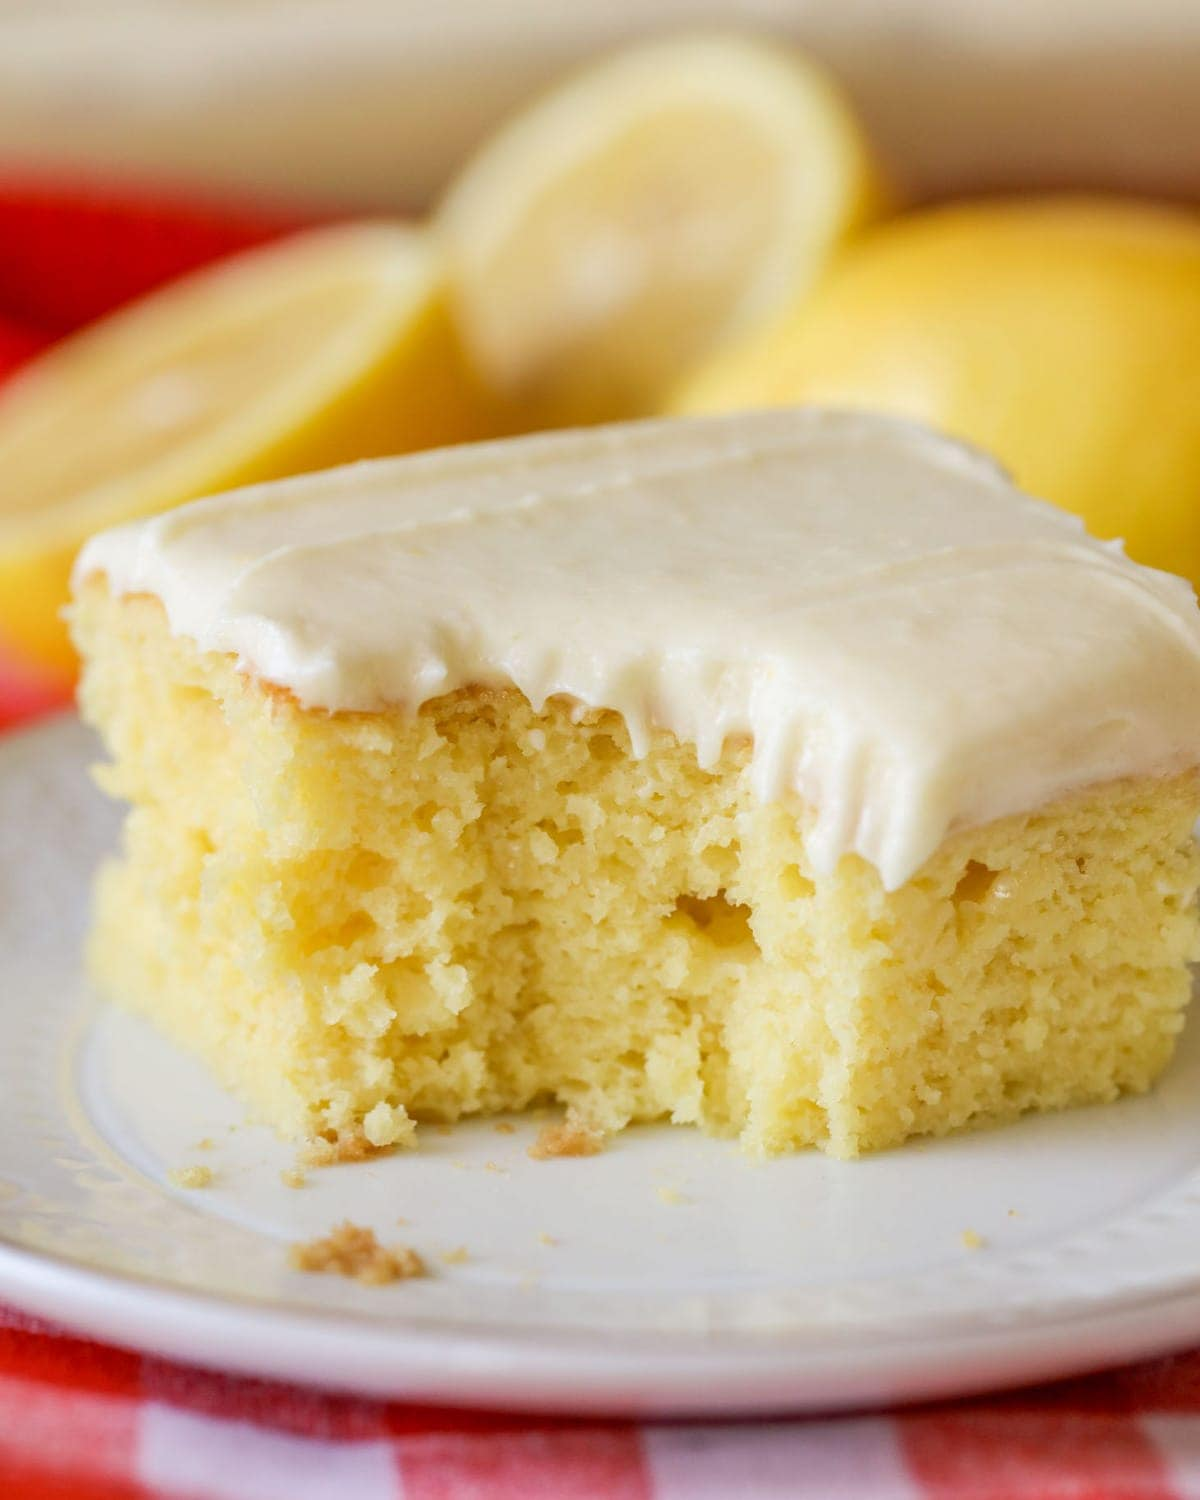 Recipes That Start With A Yellow Cake Mix